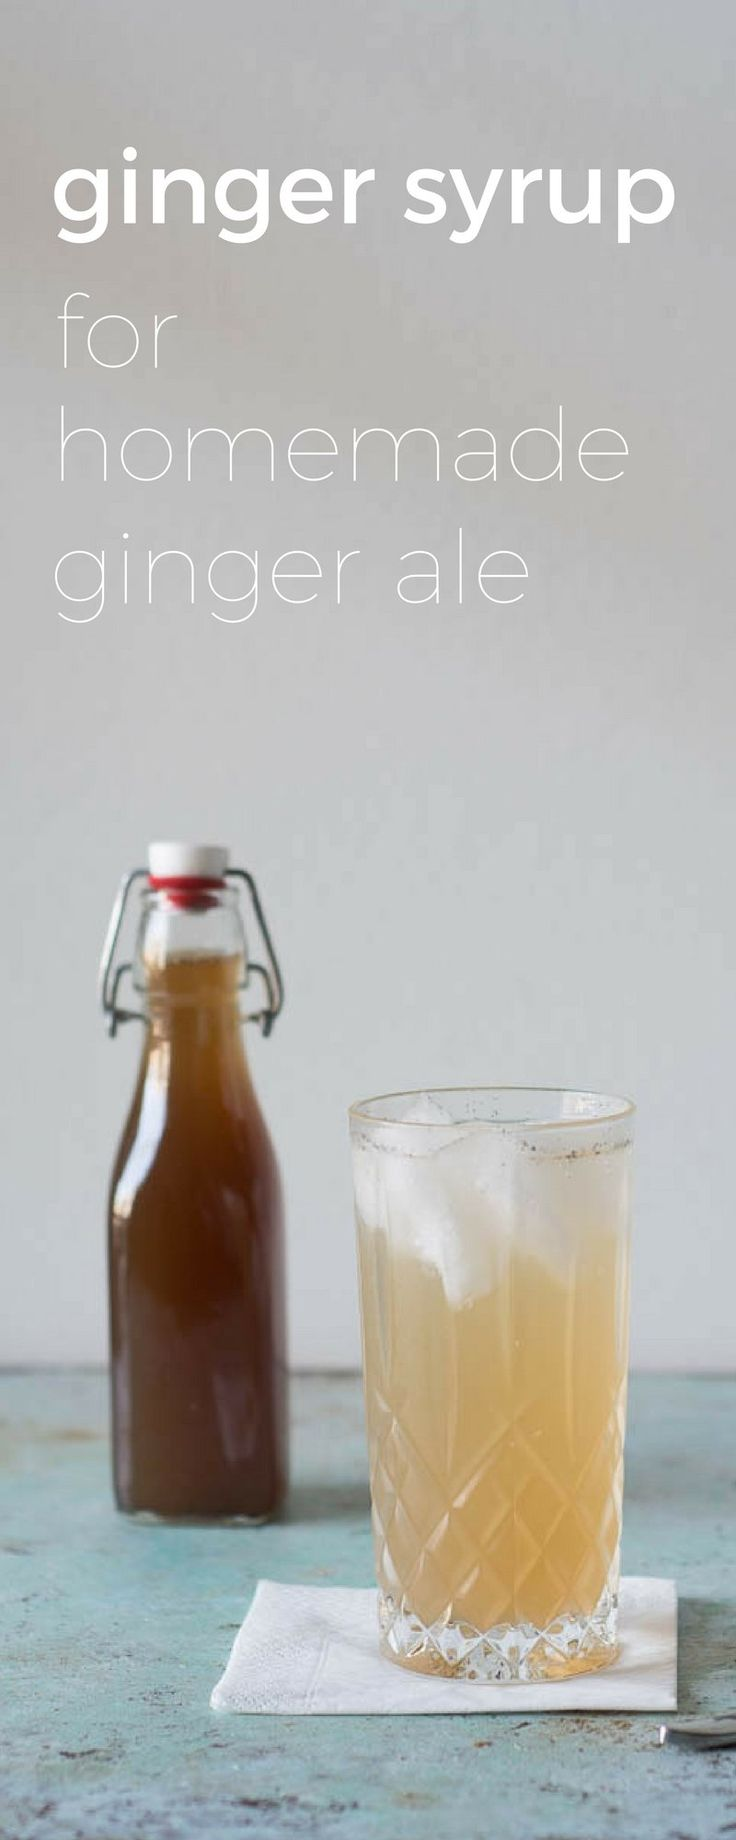 Ginger syrup for homemade ginger ale. A creamy, complex ginger syrup. Perfect in Moscow Mules, Dark & Stormies, and more. via @blossomtostem